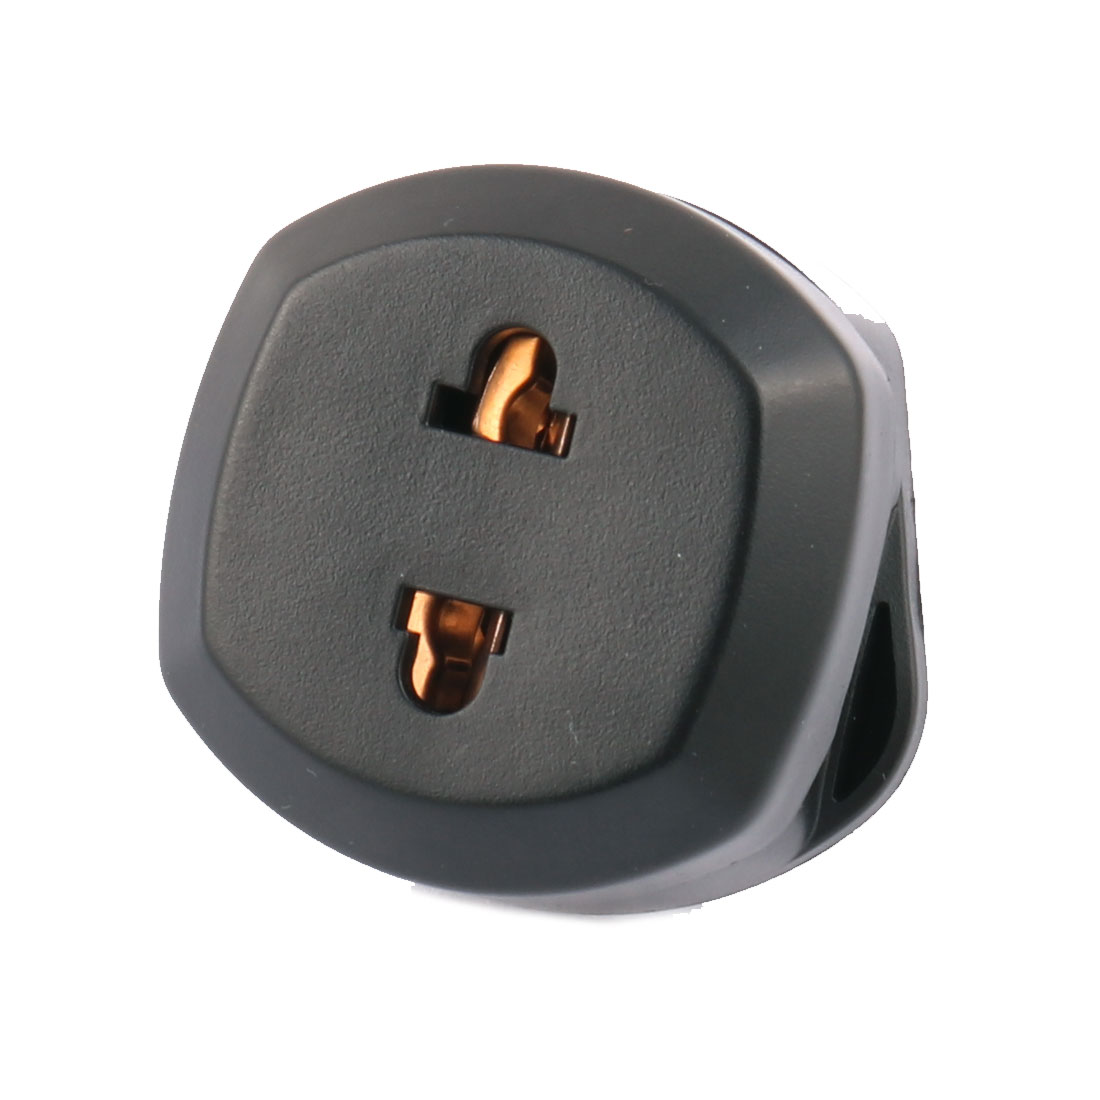 AC 250V 13A UK Plug to US Socket Power Adaptor Connector For Traveller